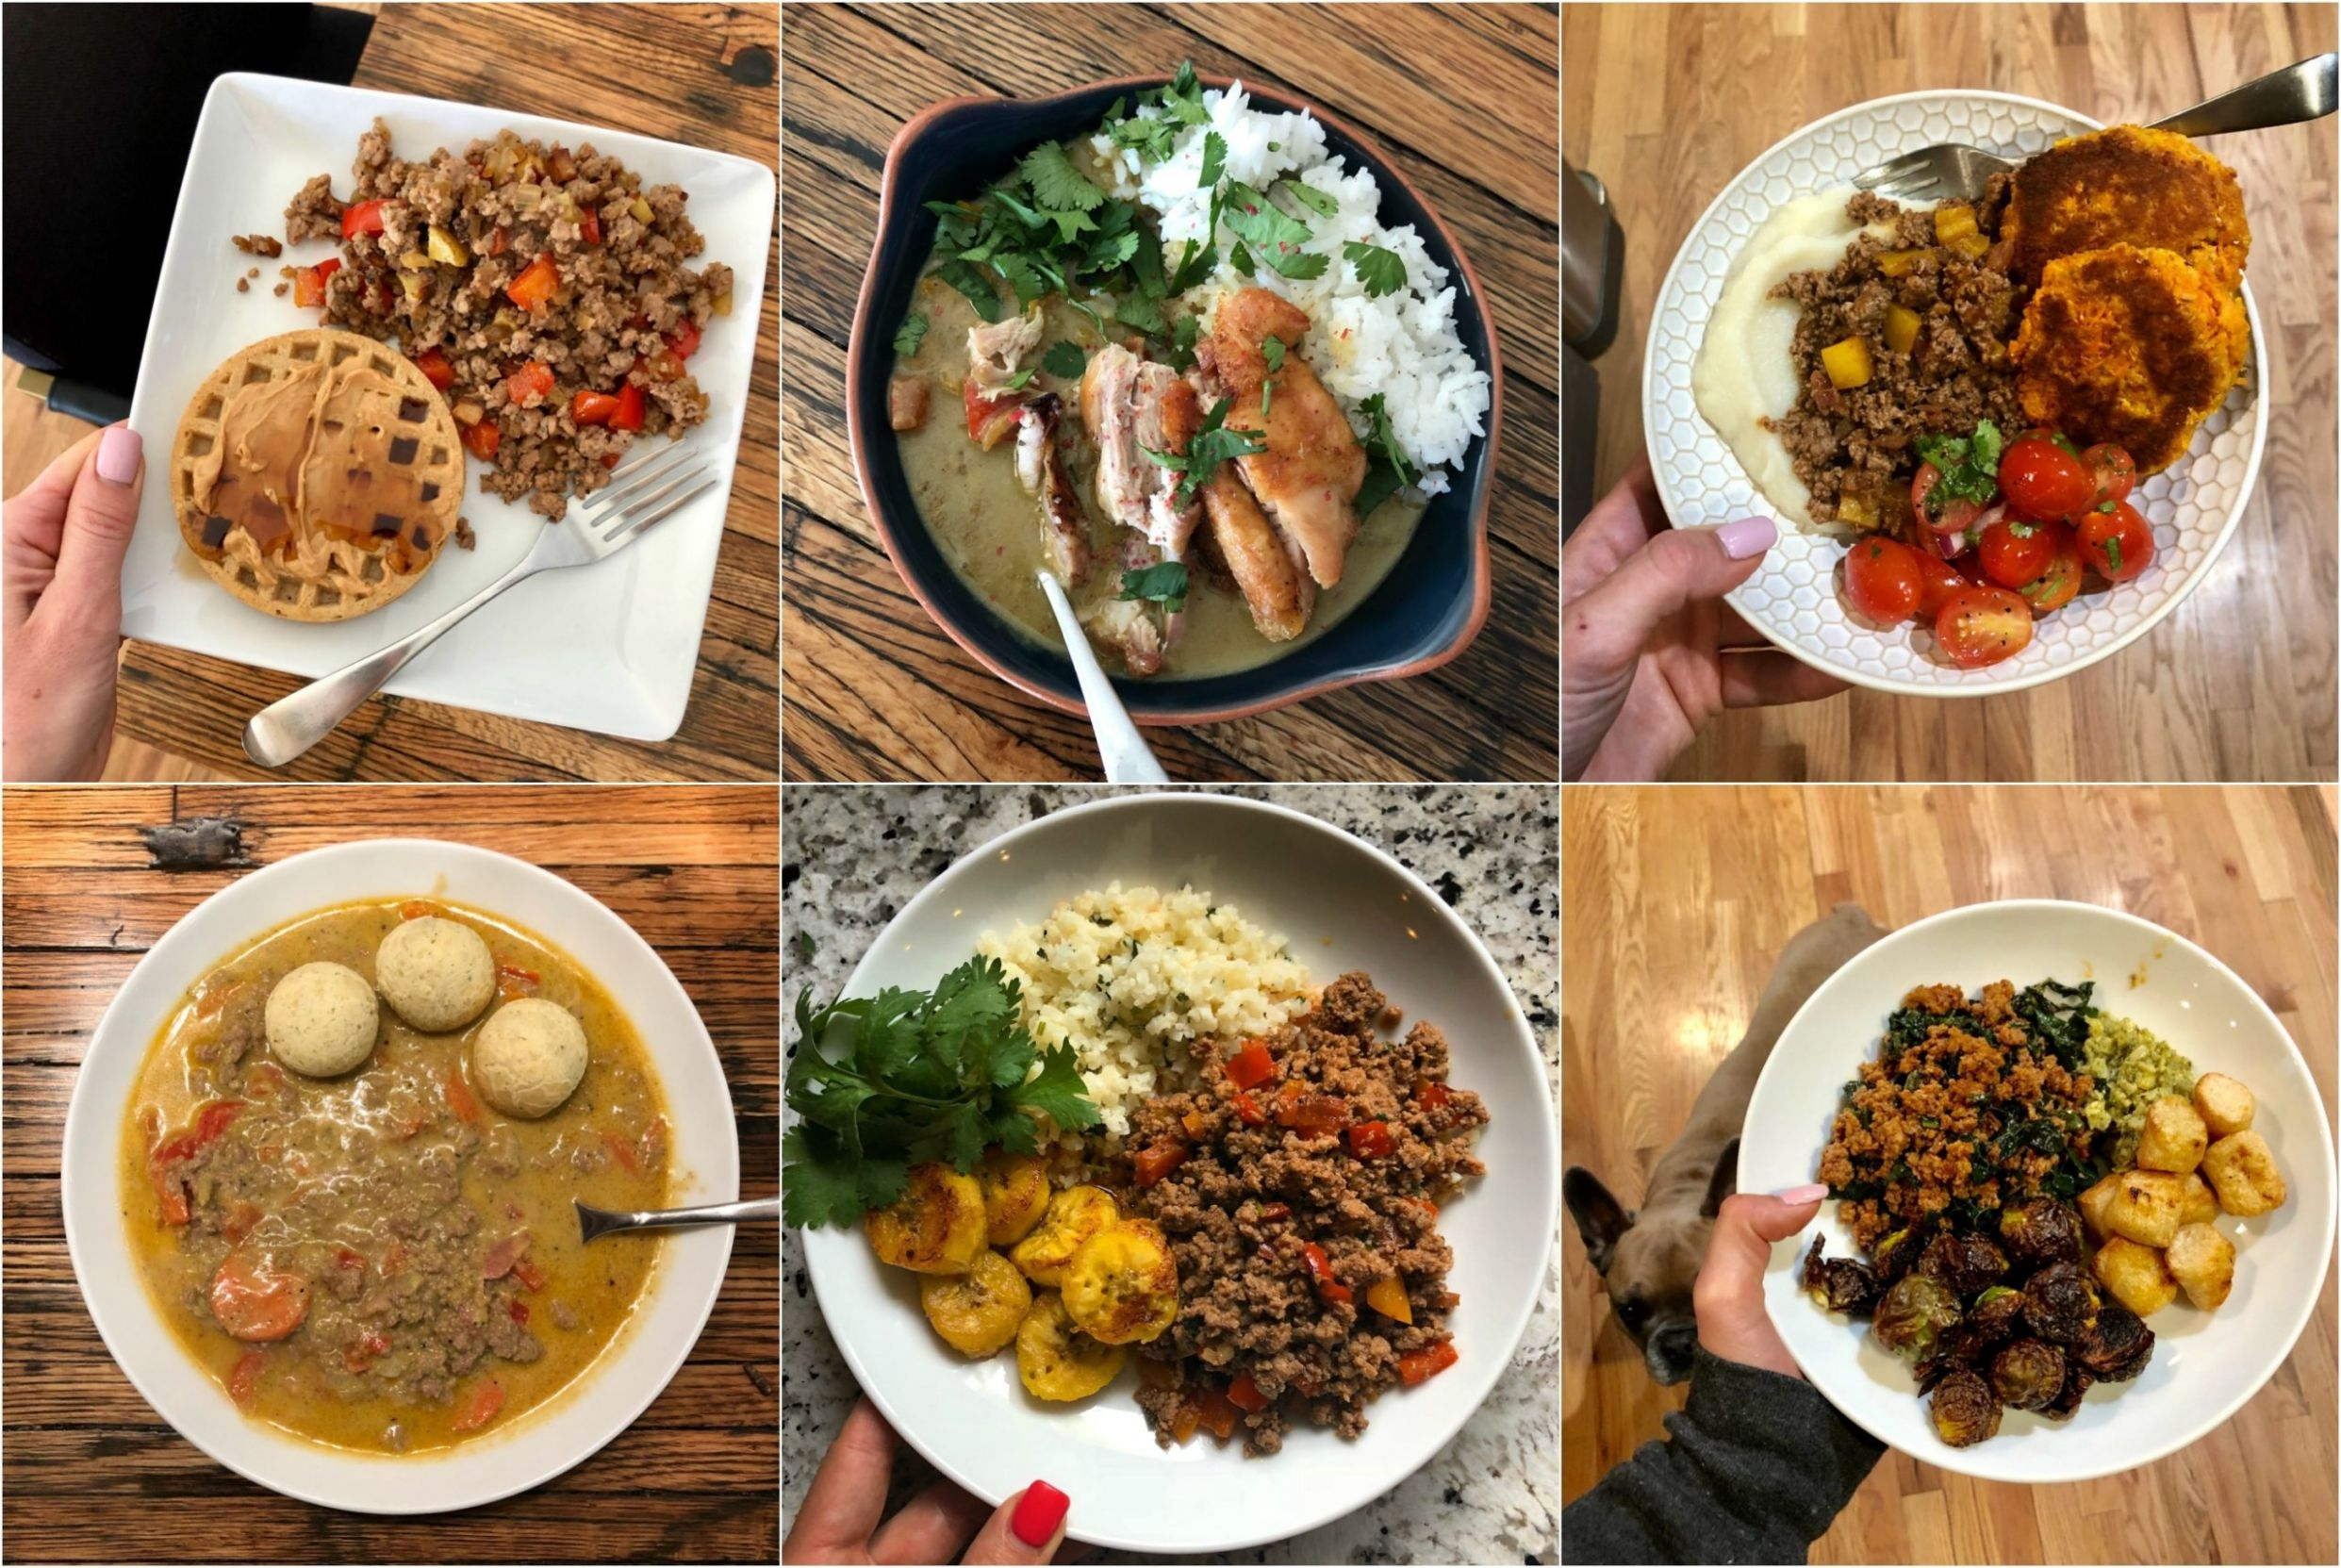 Easy Meals I Make at Home in Under 12 Minutes - PaleOMG - Food Recipes To Make At Home